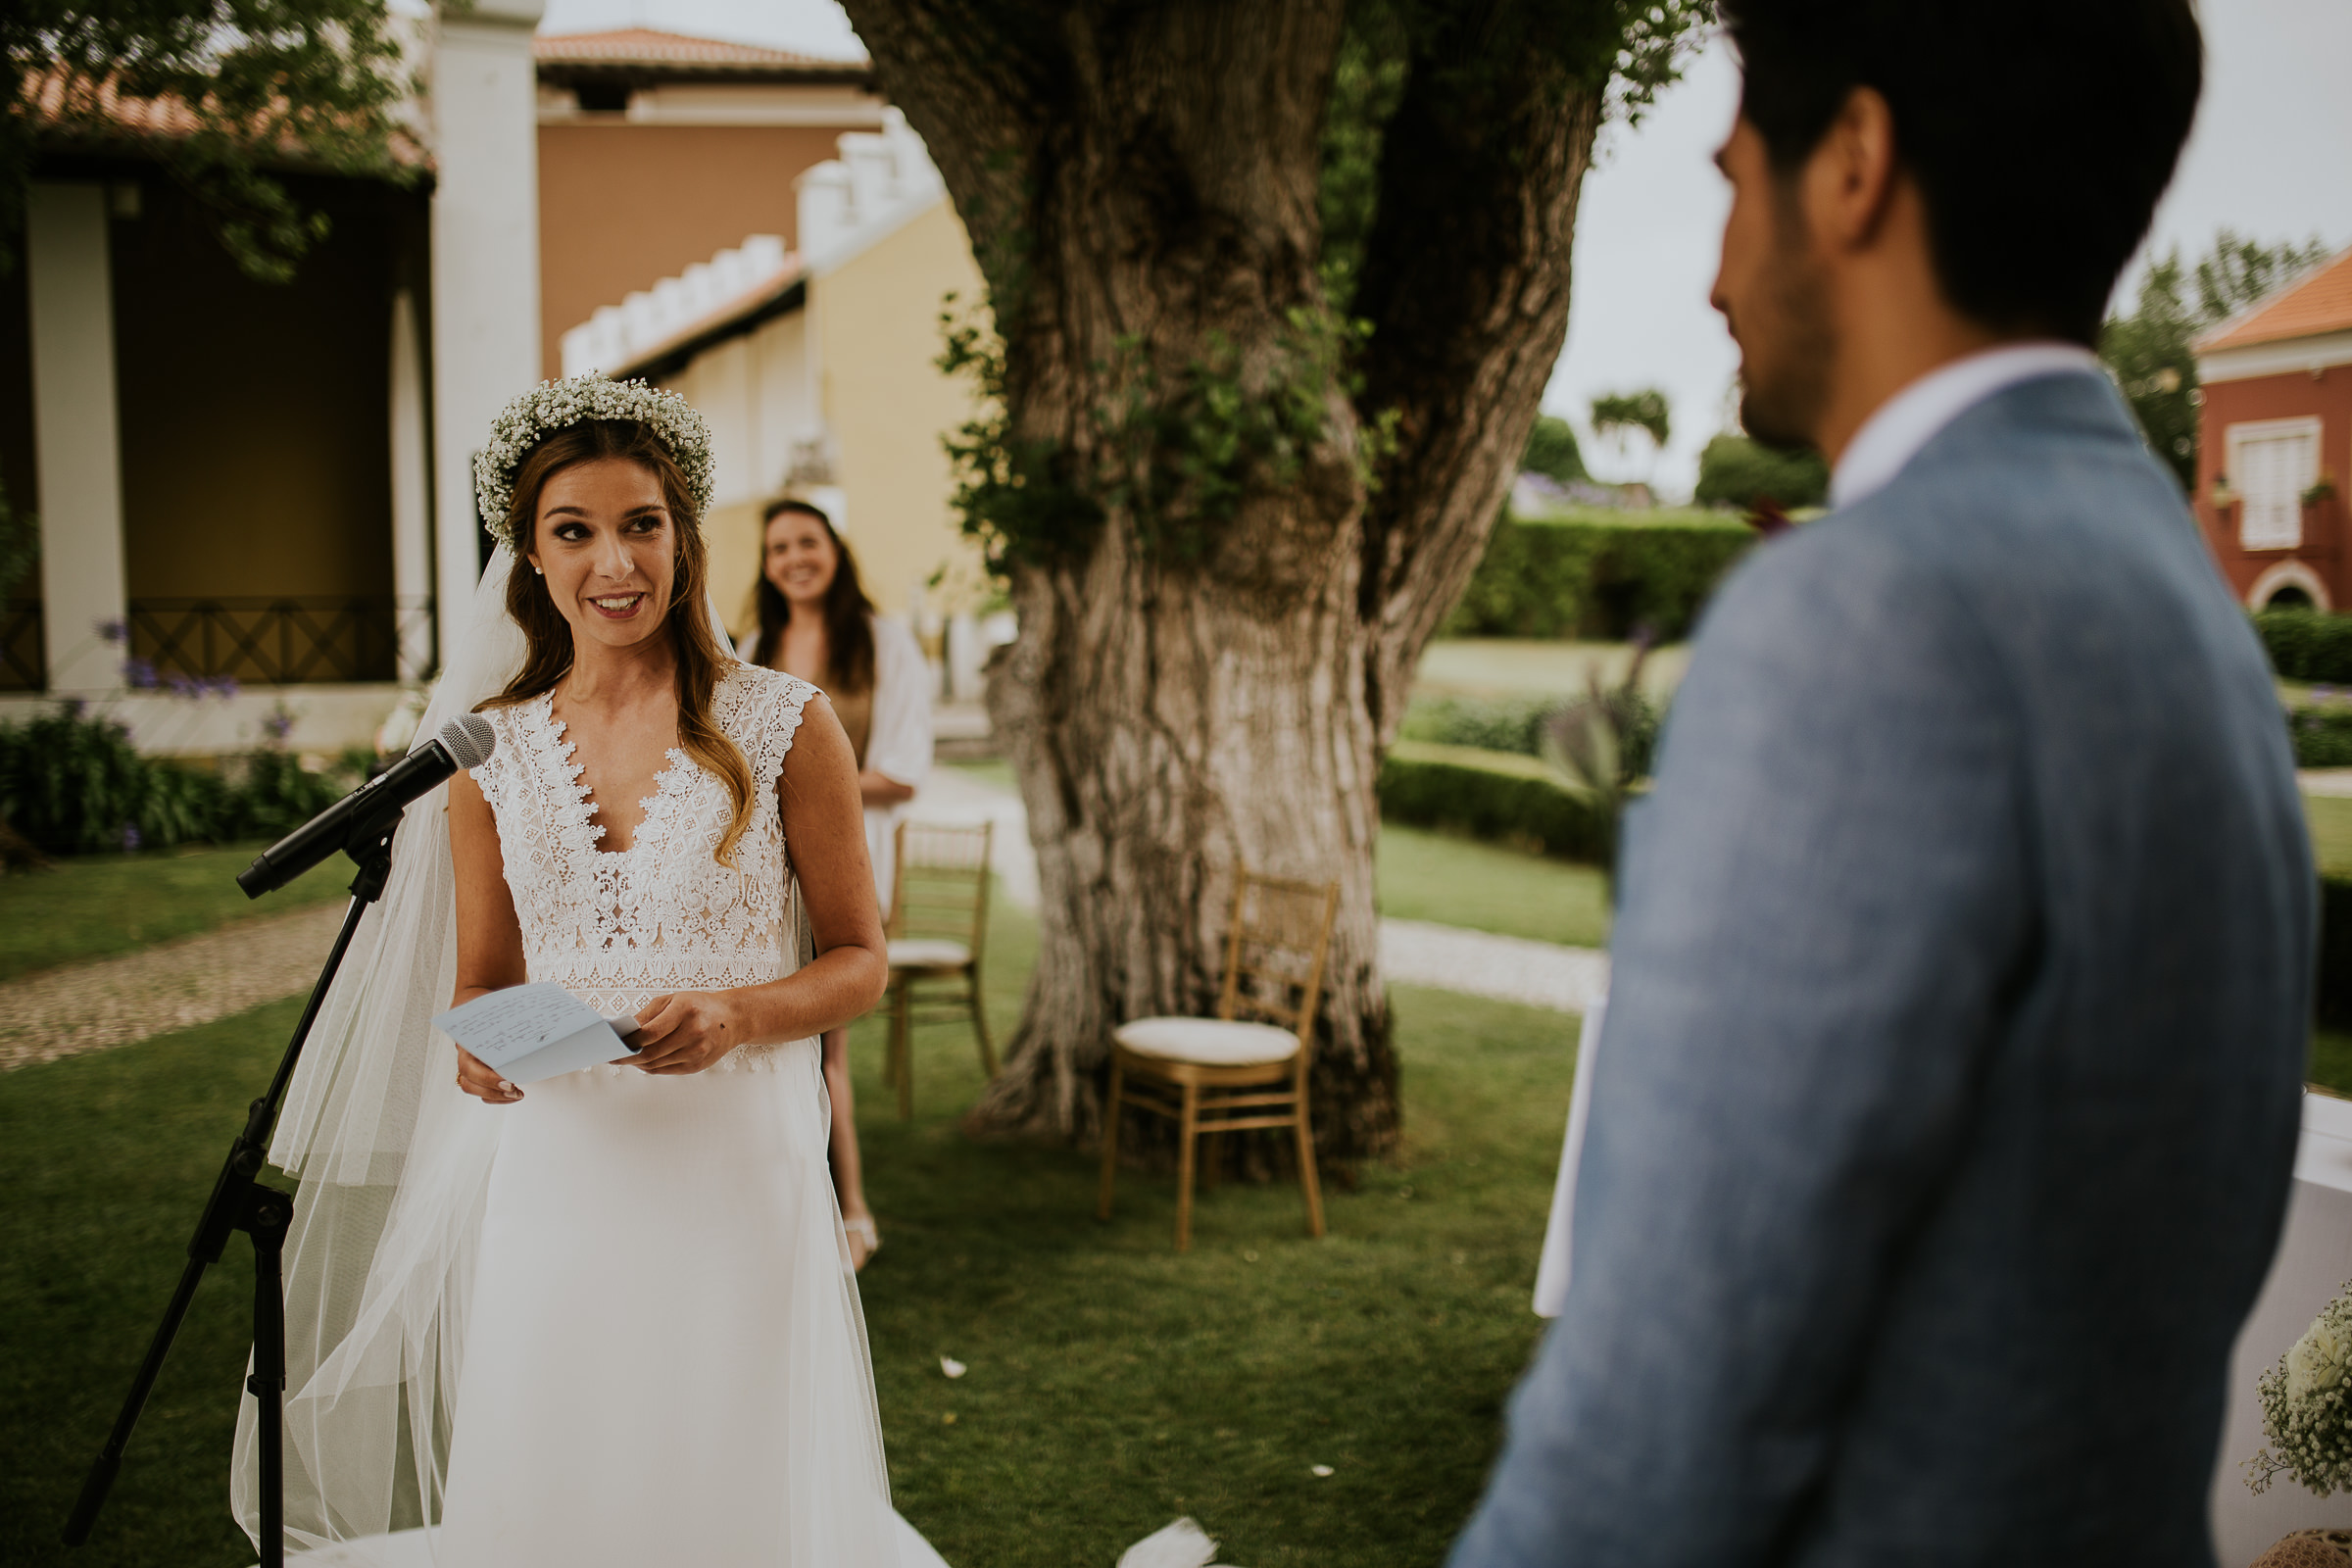 Bride reading her vows to the groom at the altar in an outdoor ceremony